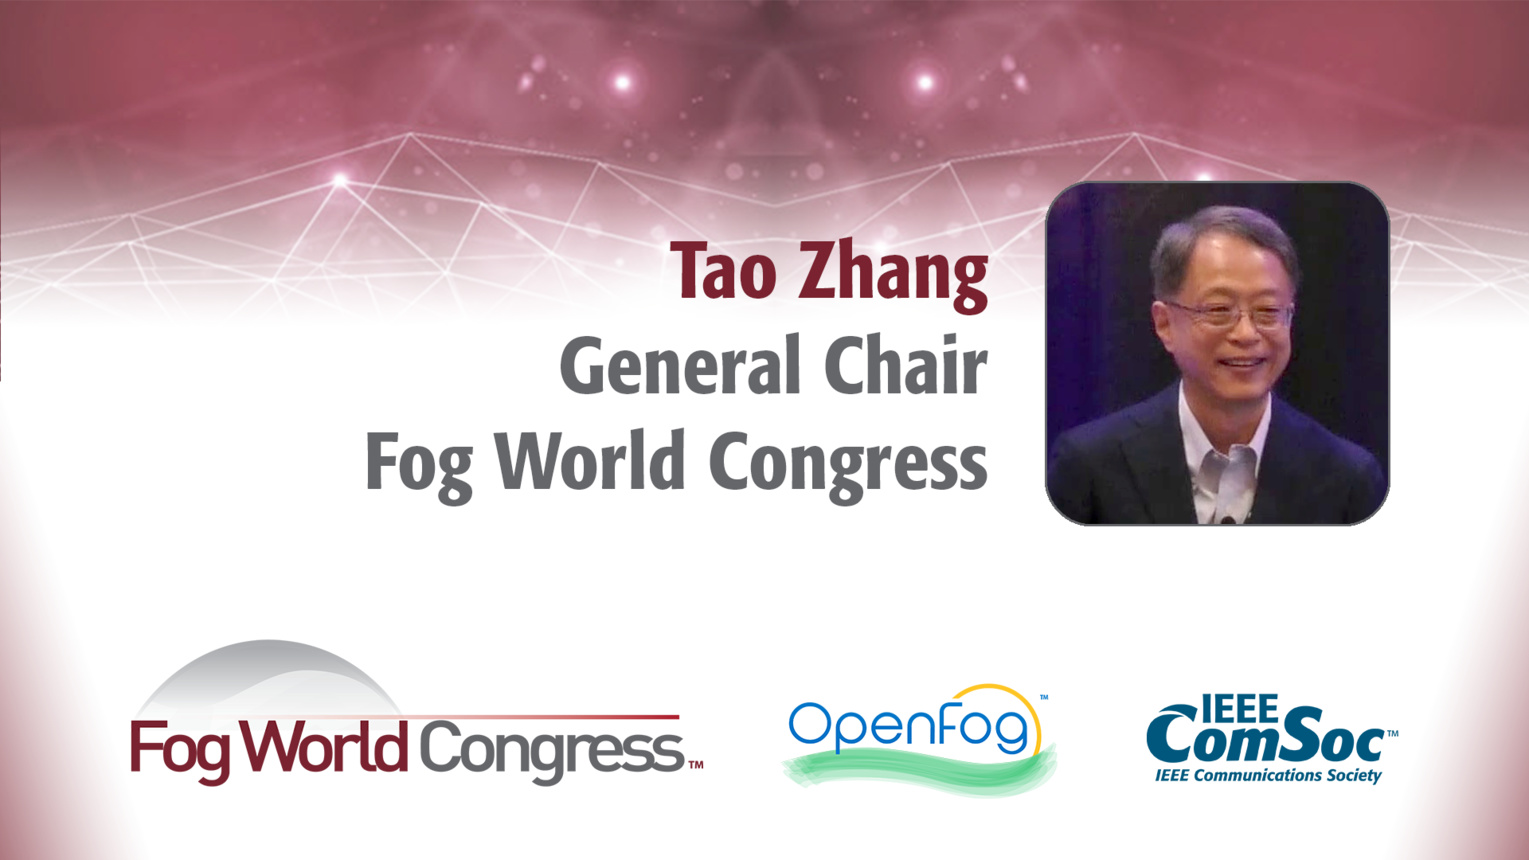 Fogonomics: The Coming Era of Fog Computing - Tao Zhang Keynote from Fog World Congress 2017